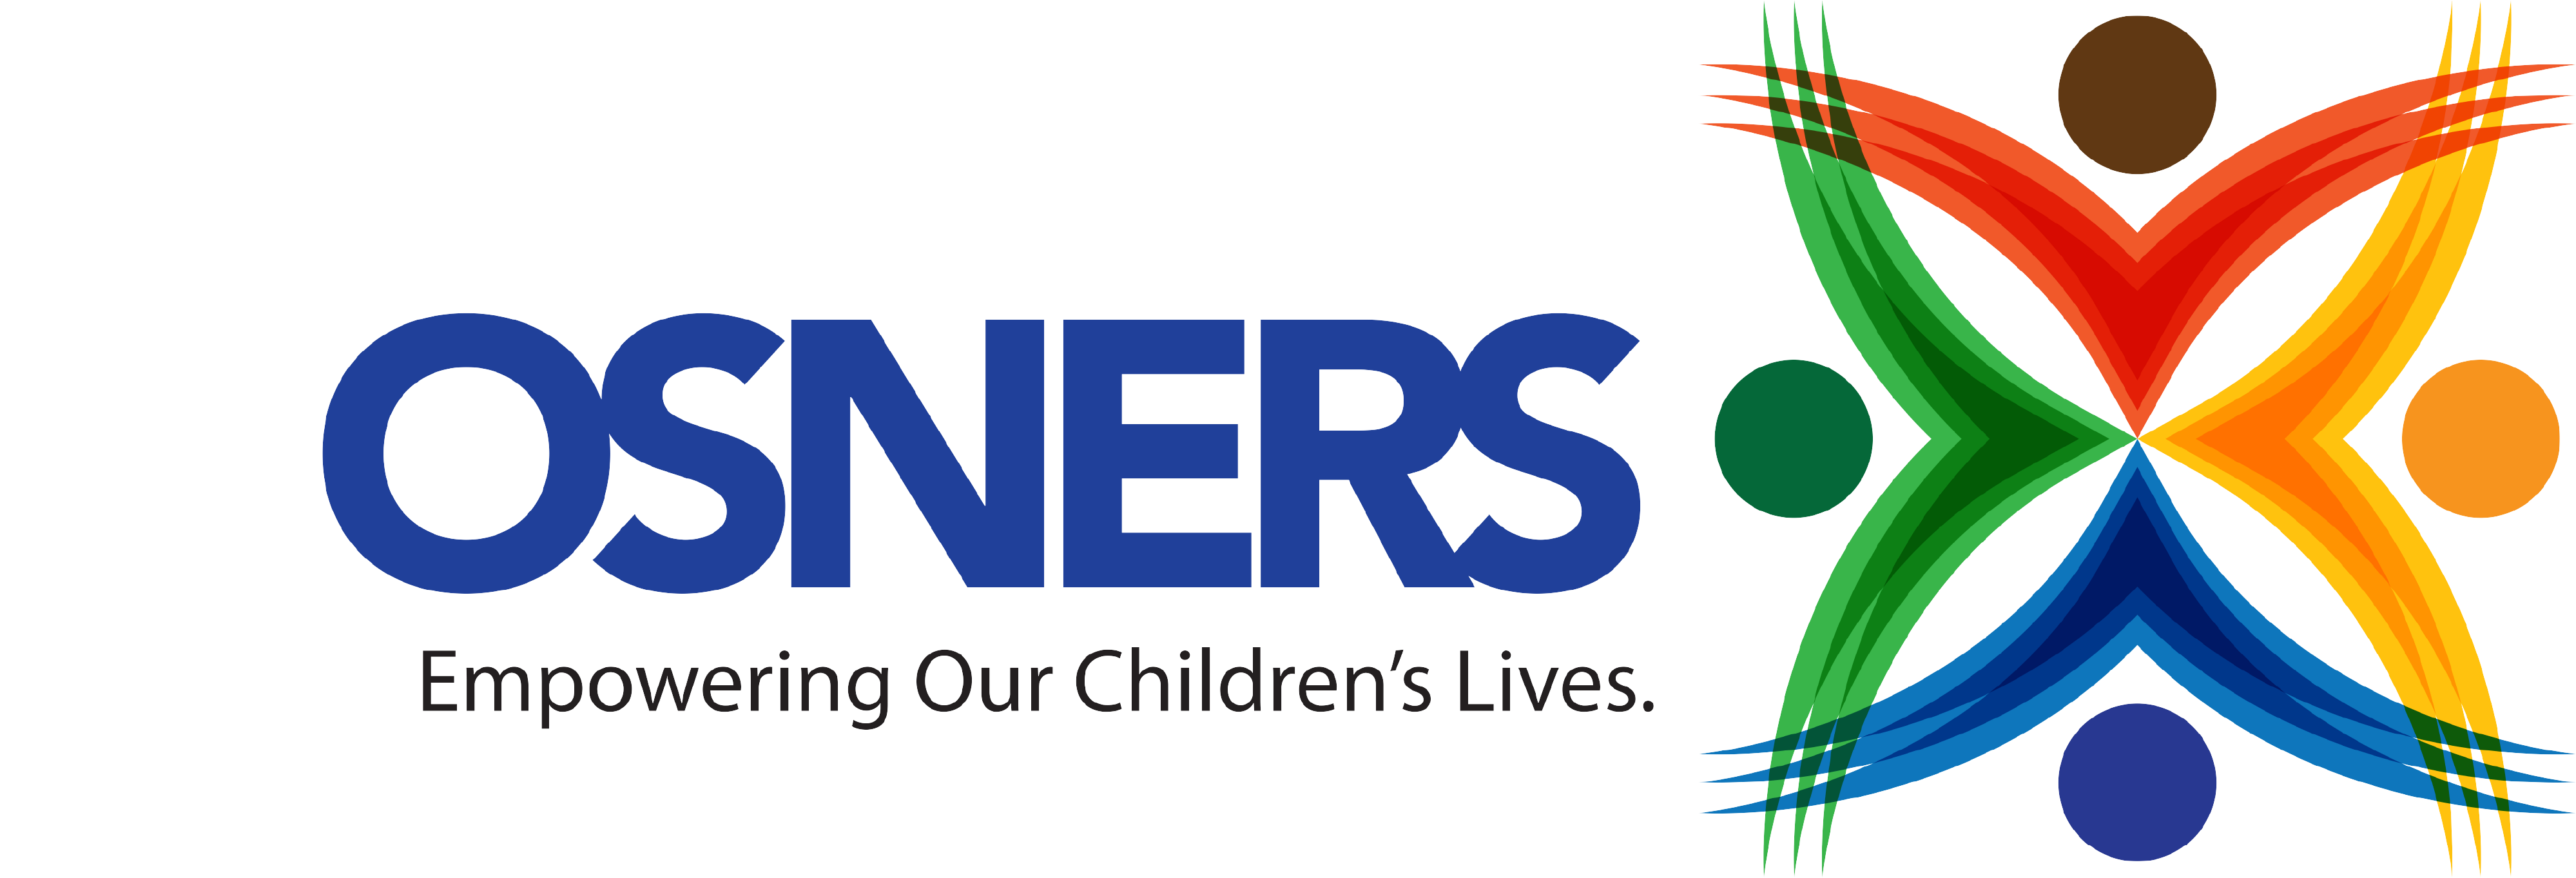 Osners.org - Empowering our children's lives - NGO